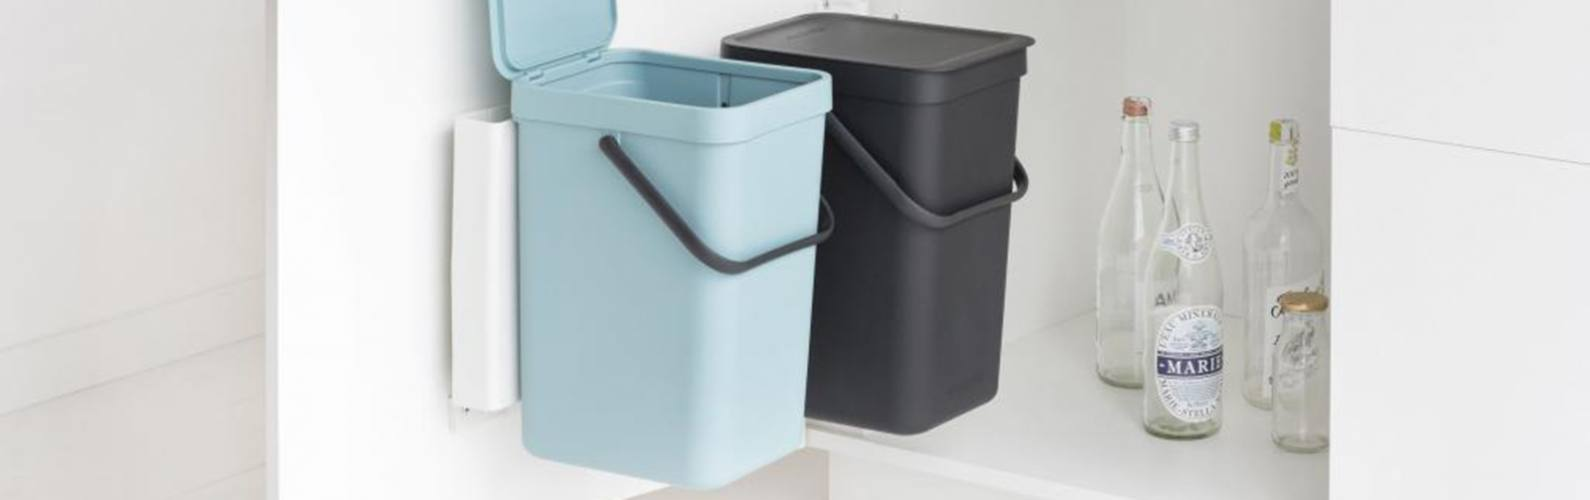 Get organised with the latest recycling storage solutions